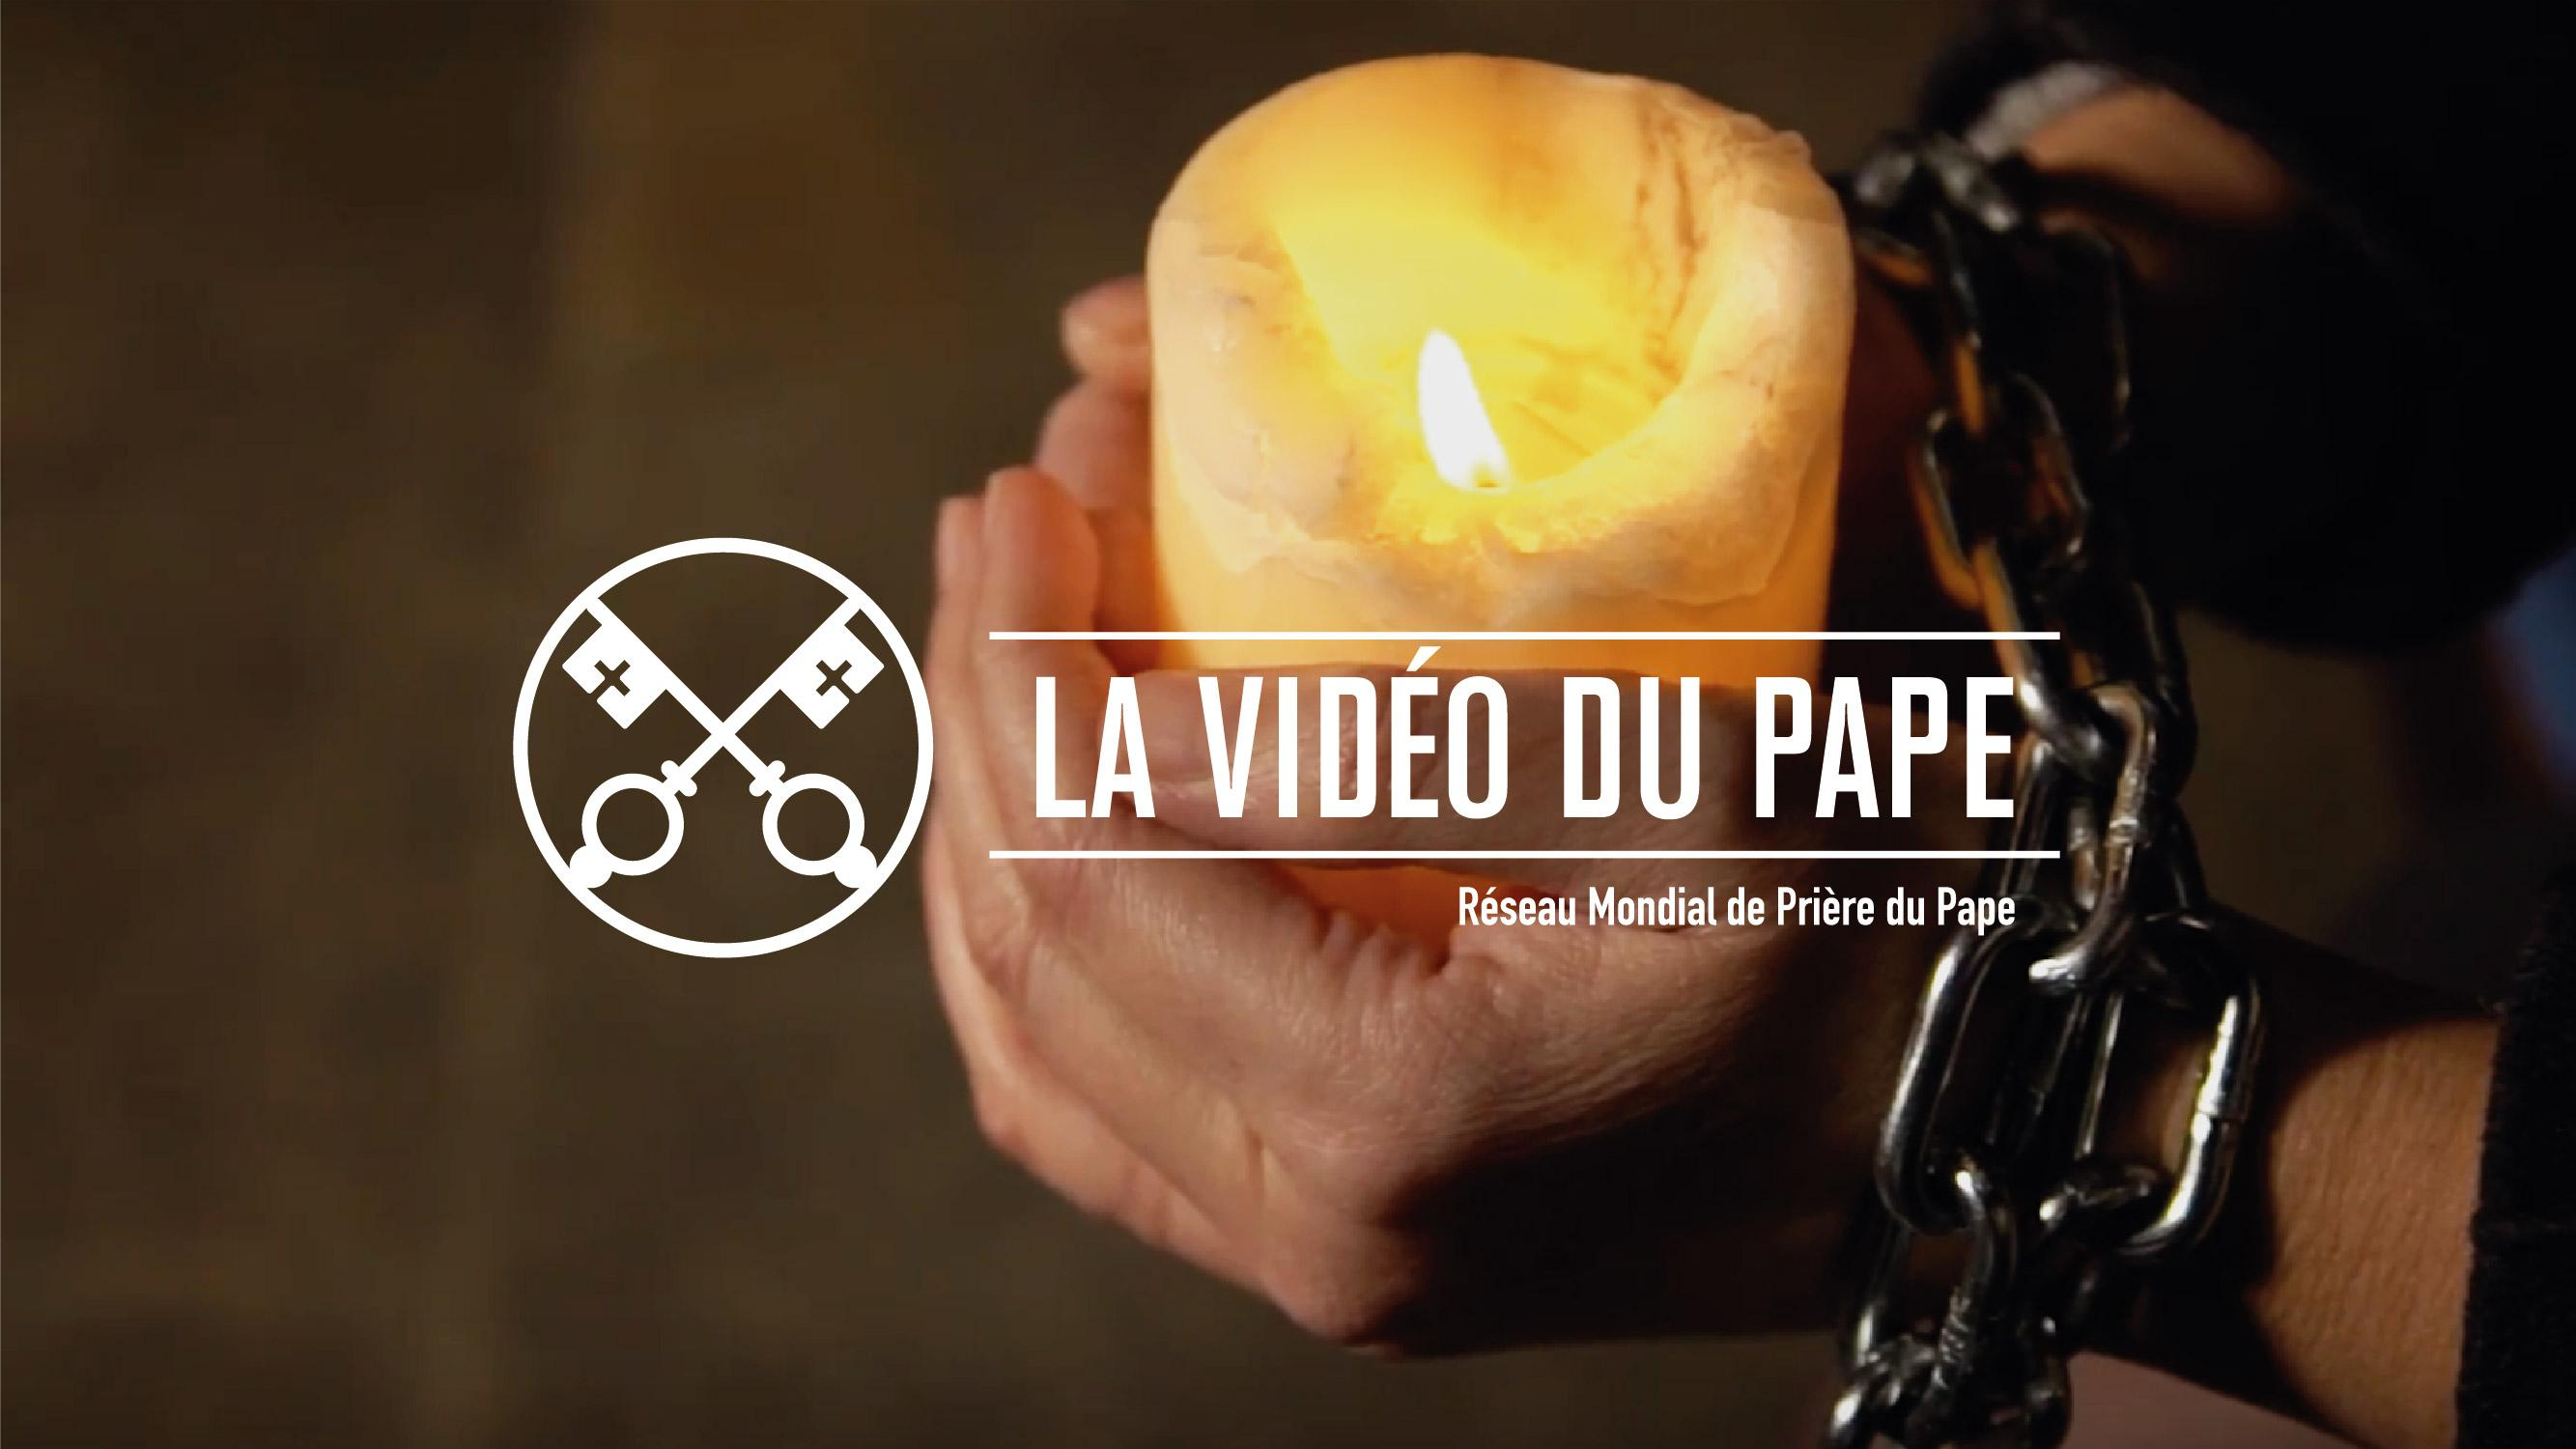 The-Pope-Video-1-2018-Religious-minorities-in-Asia-4-French